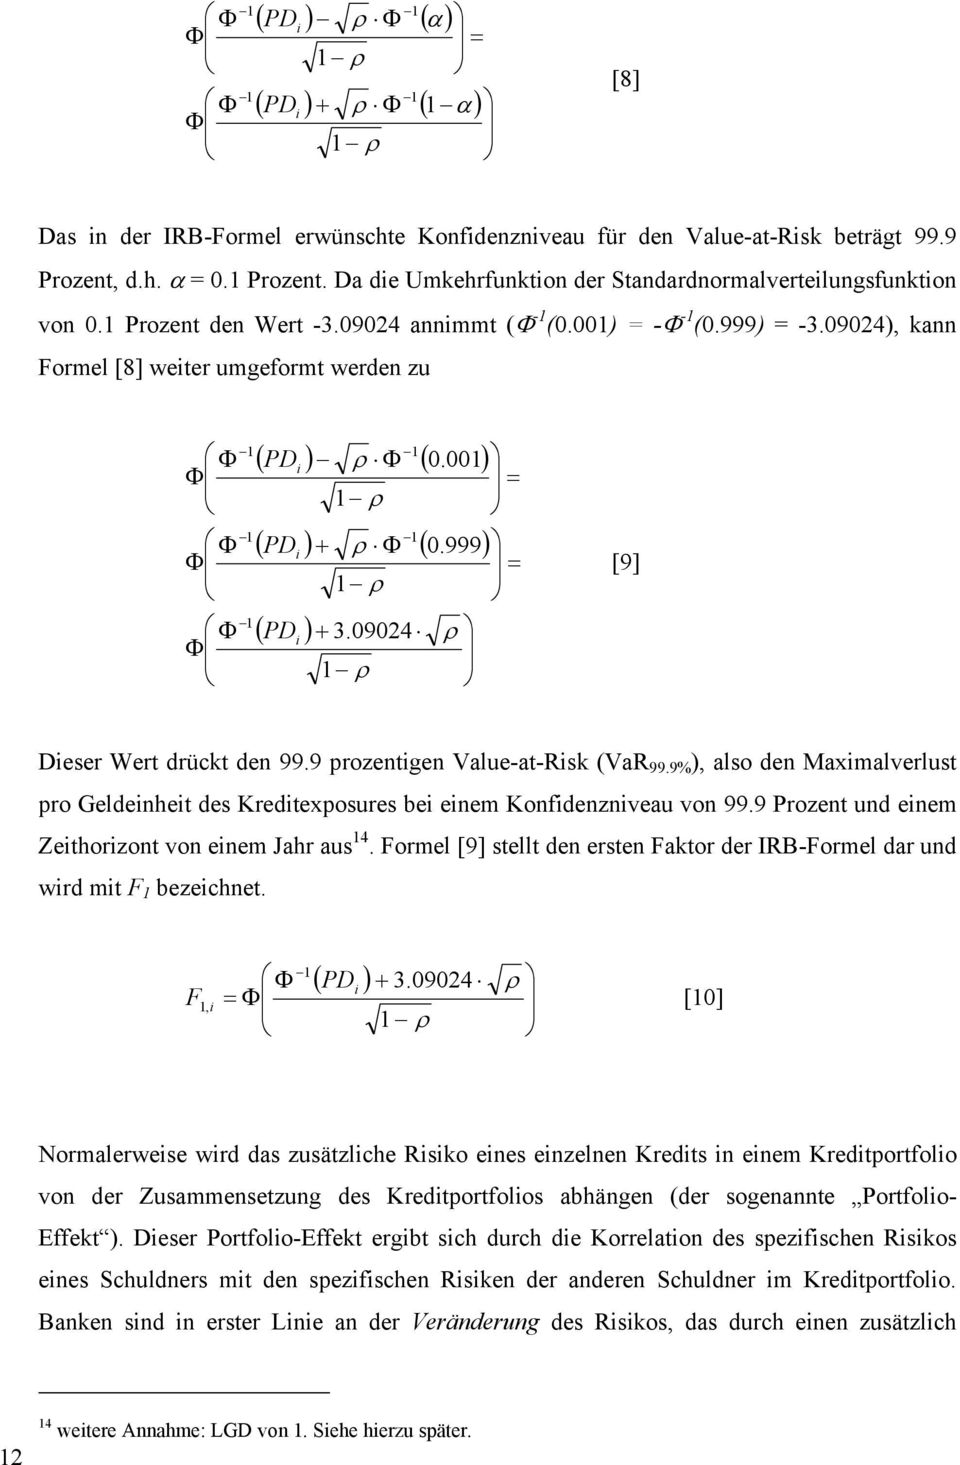 0904), kann Formel [8] weter umgeformt werden zu Φ Φ Φ Φ Φ Φ ( PD ) ρ Φ ( 0.001) ( PD ) + ρ Φ ( 0.999) ( PD ) 1 ρ 1 ρ + 3.0904 1 ρ ρ = = [9] Deser Wert drückt den 99.9 prozentgen Value-at-Rsk (VaR 99.